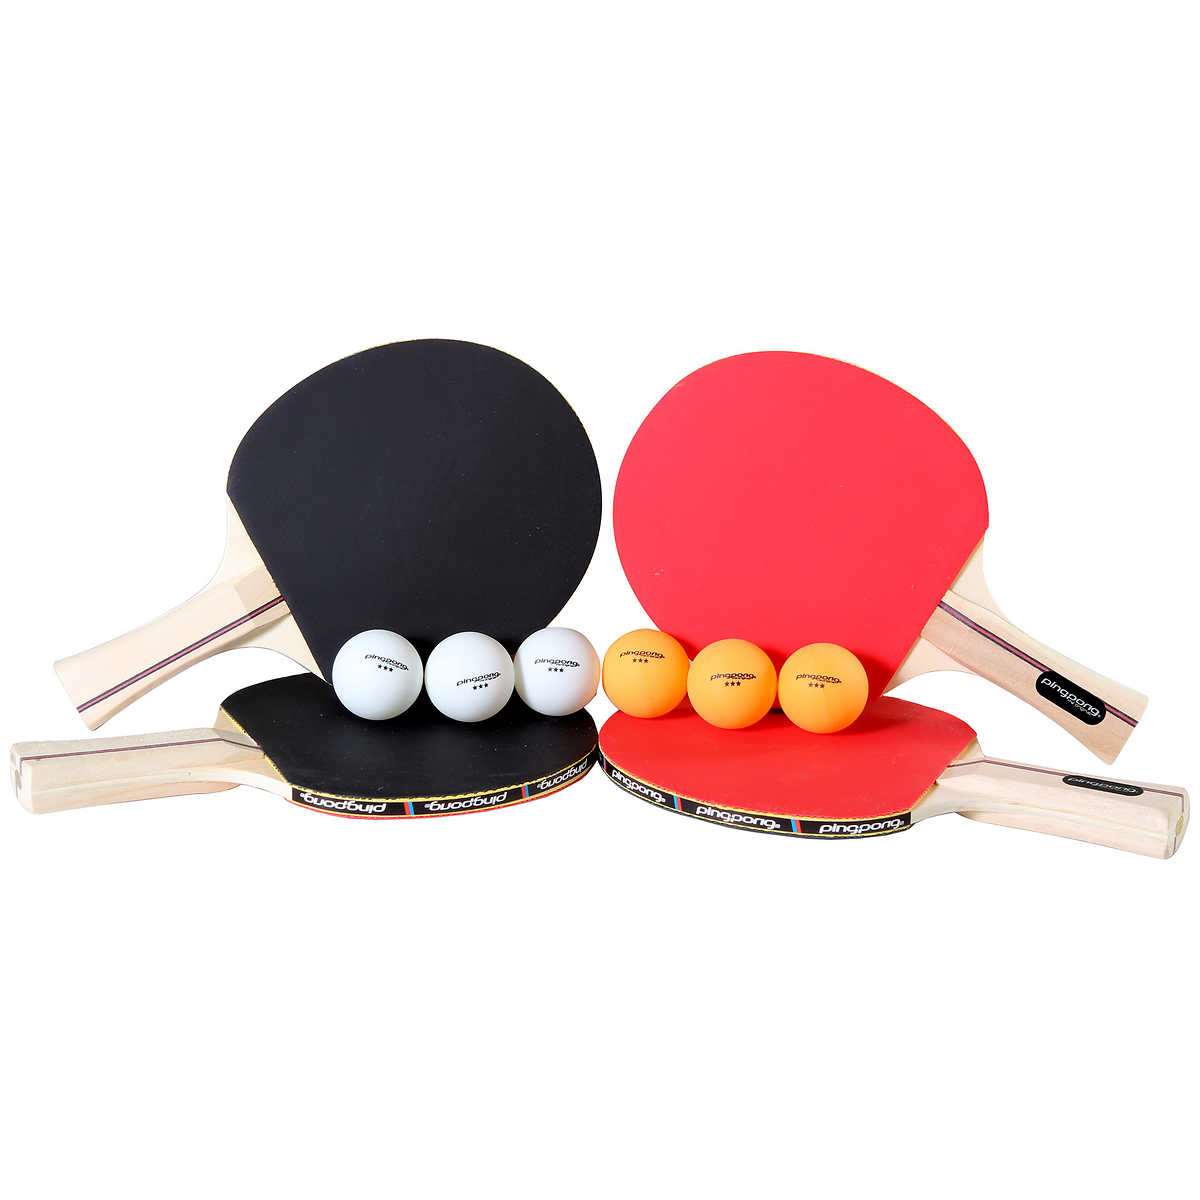 Ping Pong Performance 4-player Paddle and Ball Set